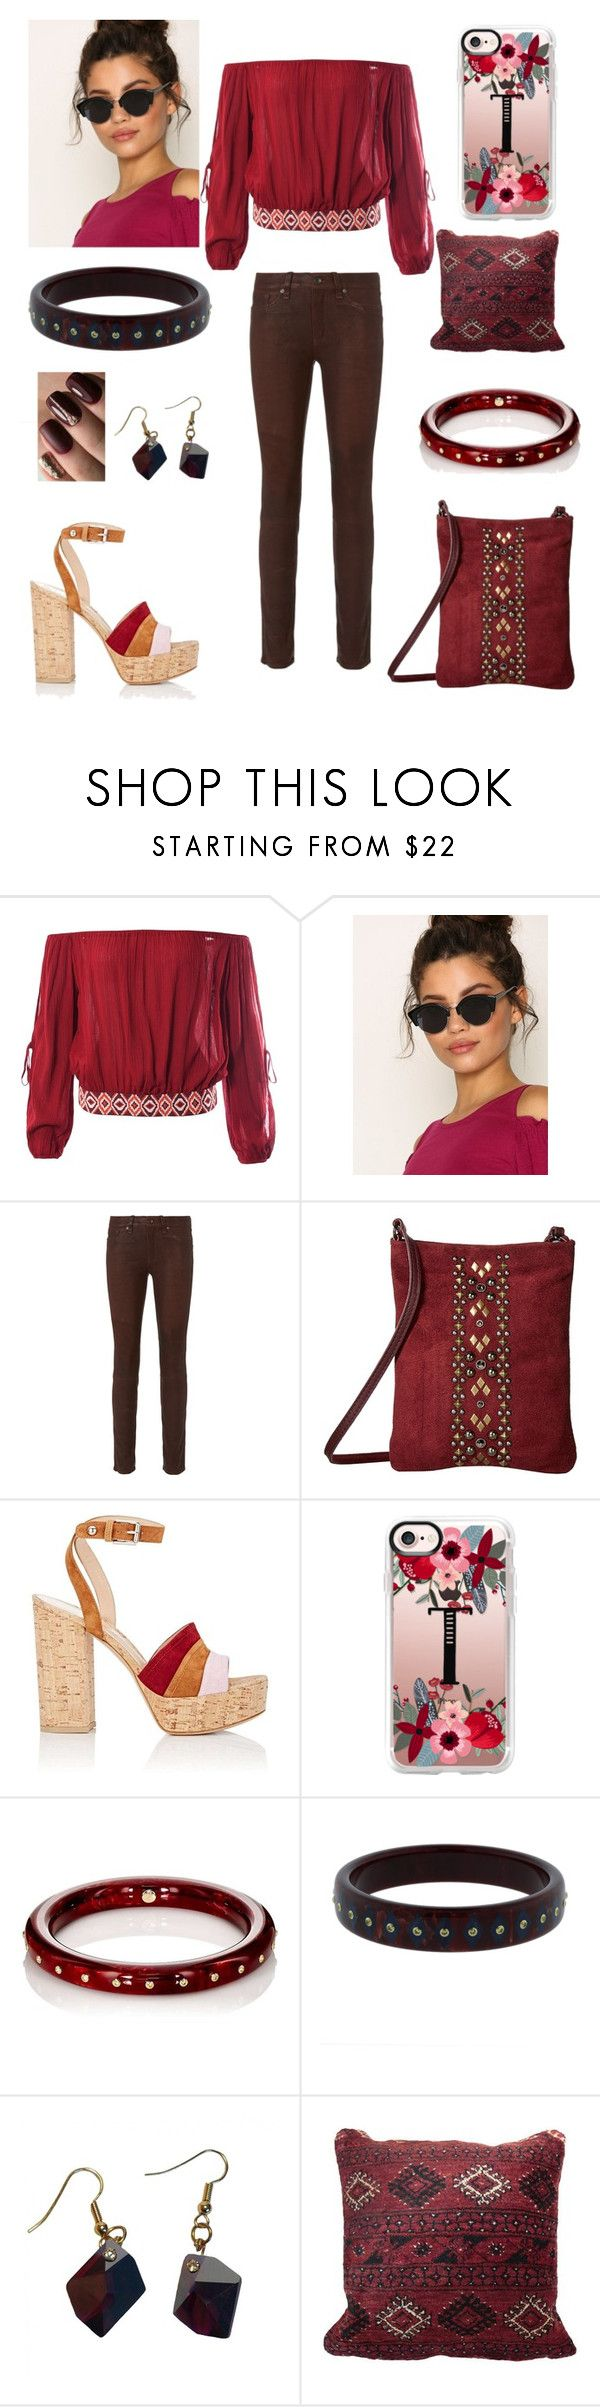 """""""Untitled #137"""" by tchantel ❤ liked on Polyvore featuring Sans Souci, Pieces, rag & bone, Leatherock, Gianvito Rossi, Casetify, Mark Davis and Marguerite de Valois"""